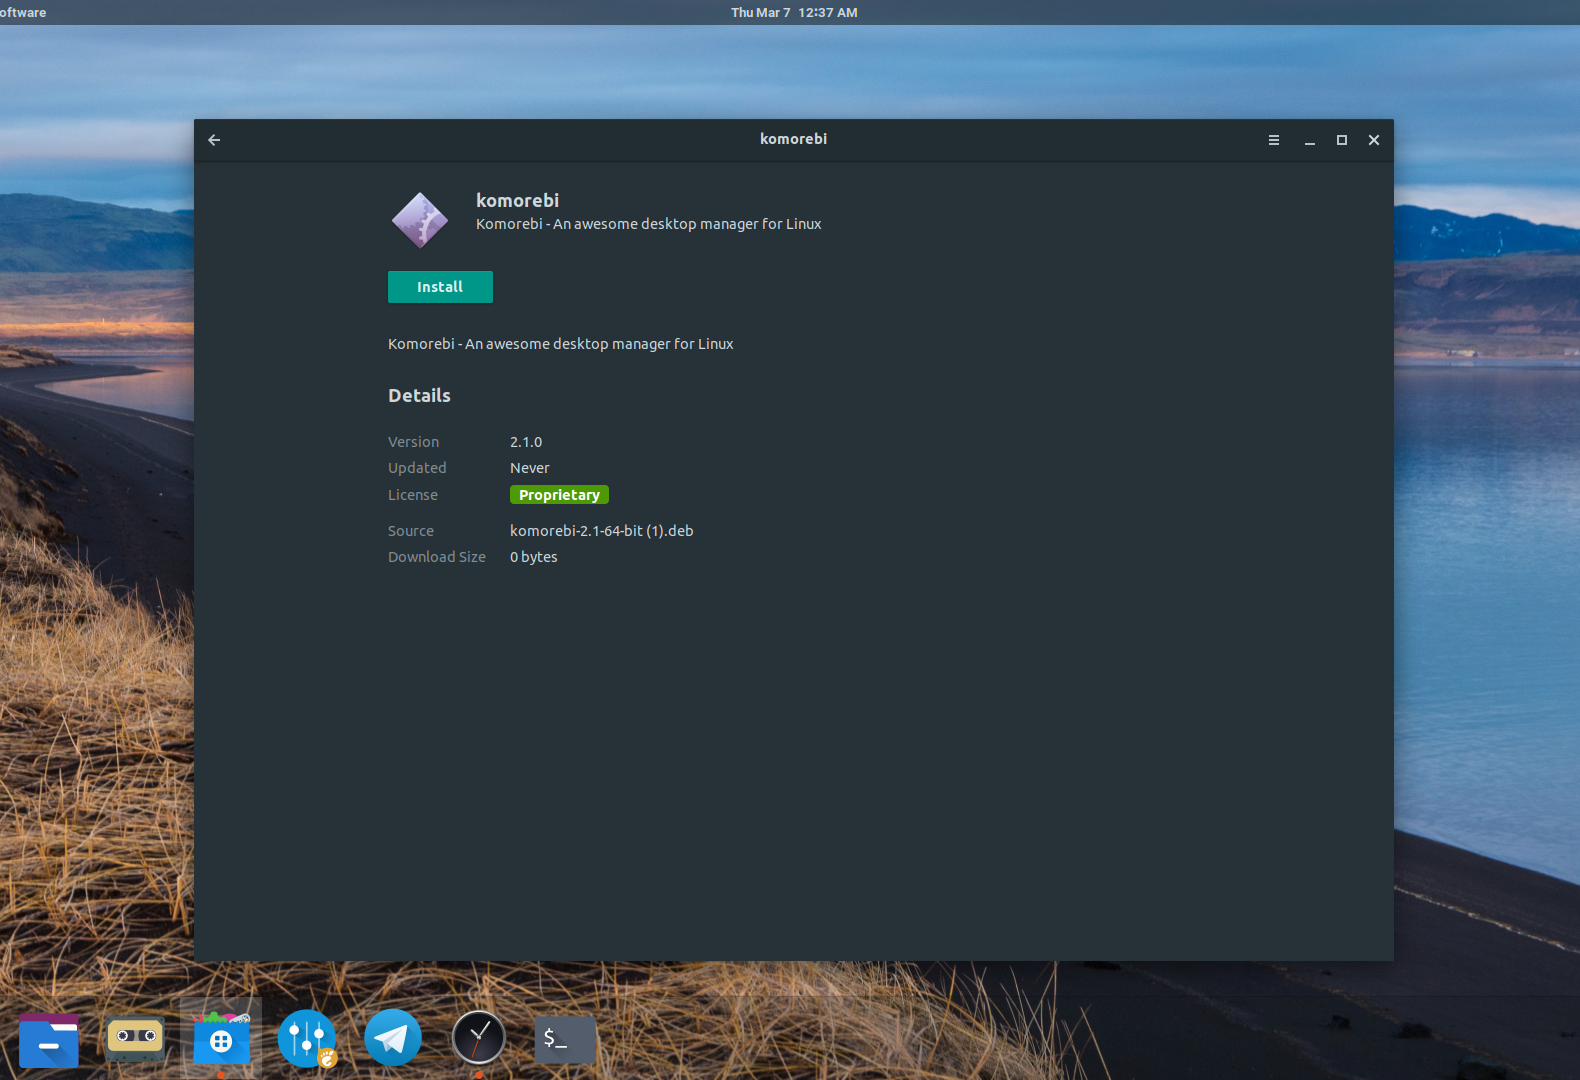 Prescott Linux Komorebi Wallpapers Display Live Time